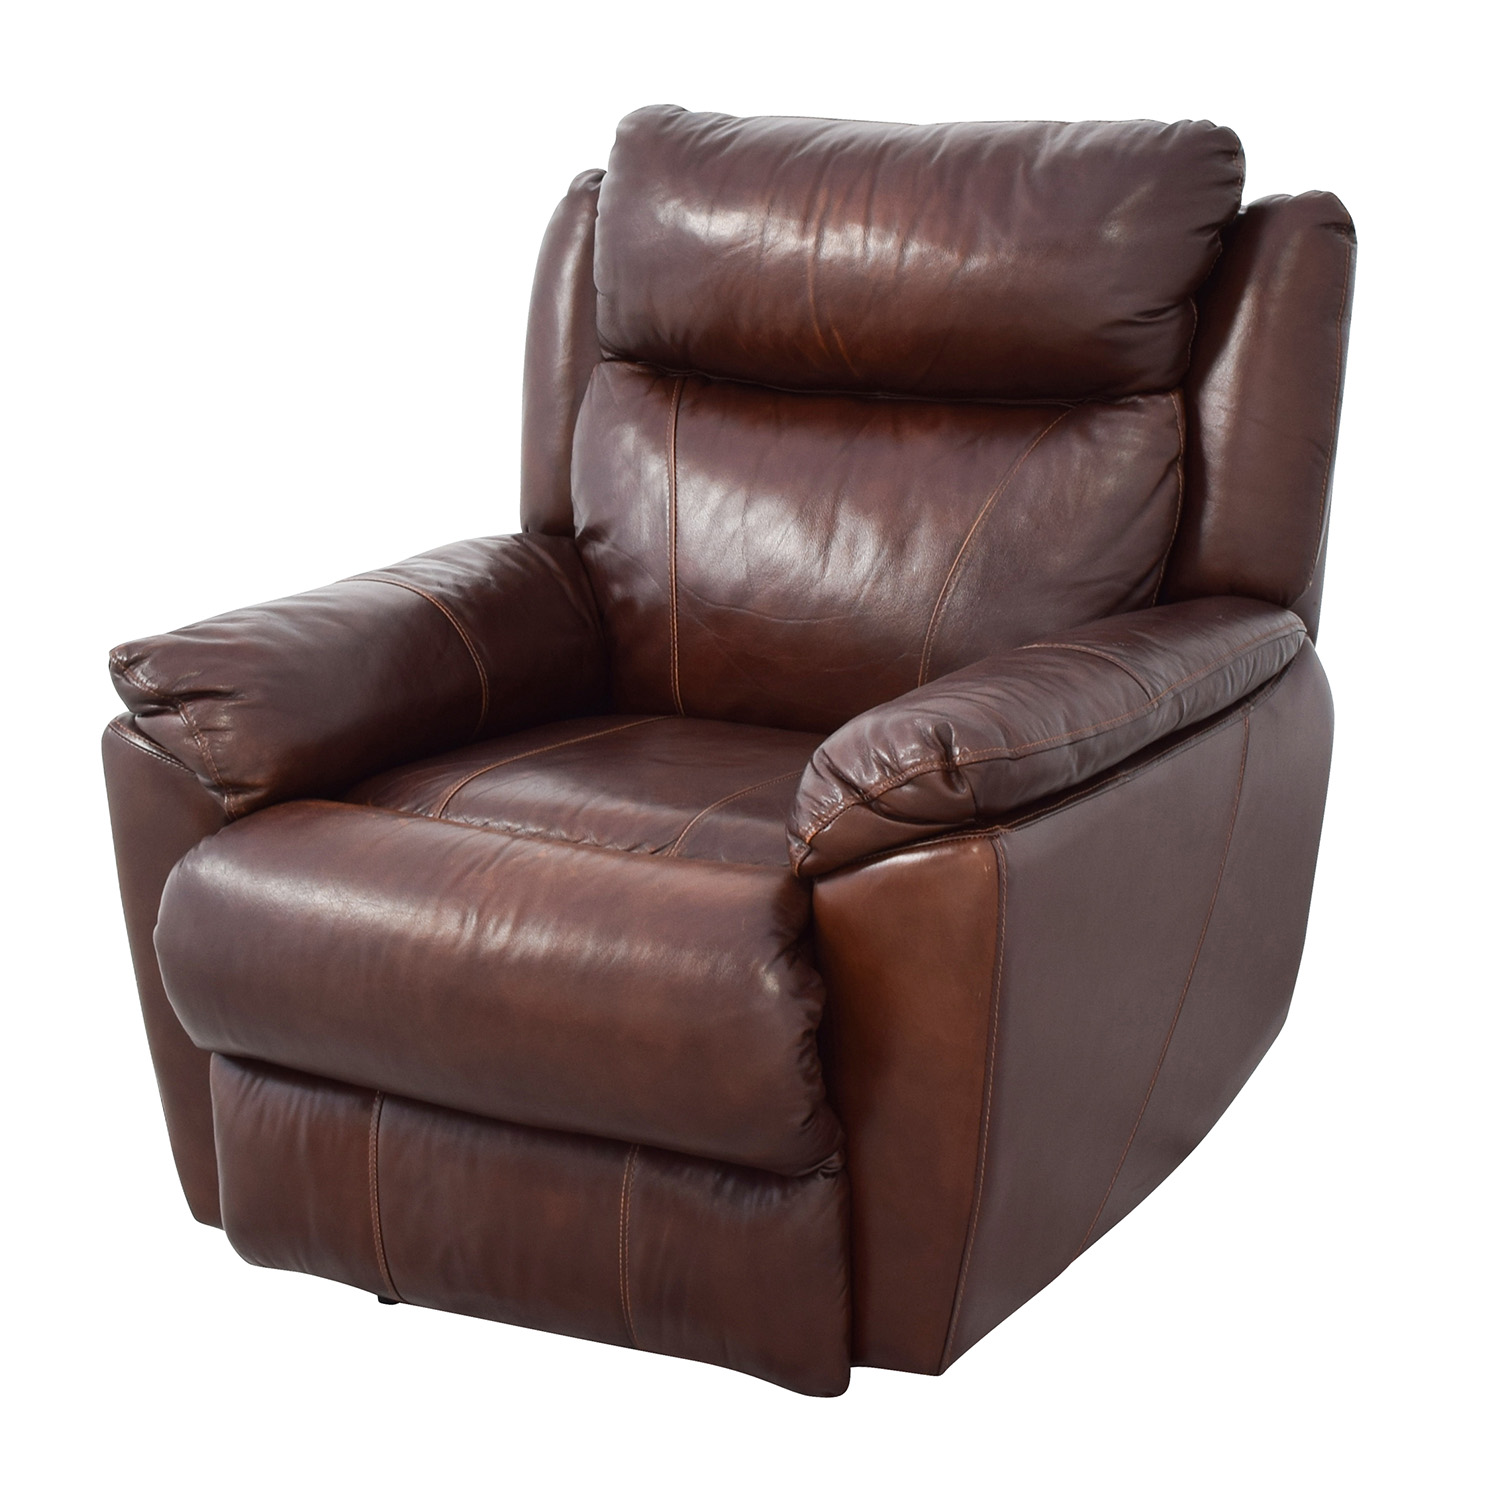 61 Off Macy S Macy S Brown Leather Power Recliner Chairs